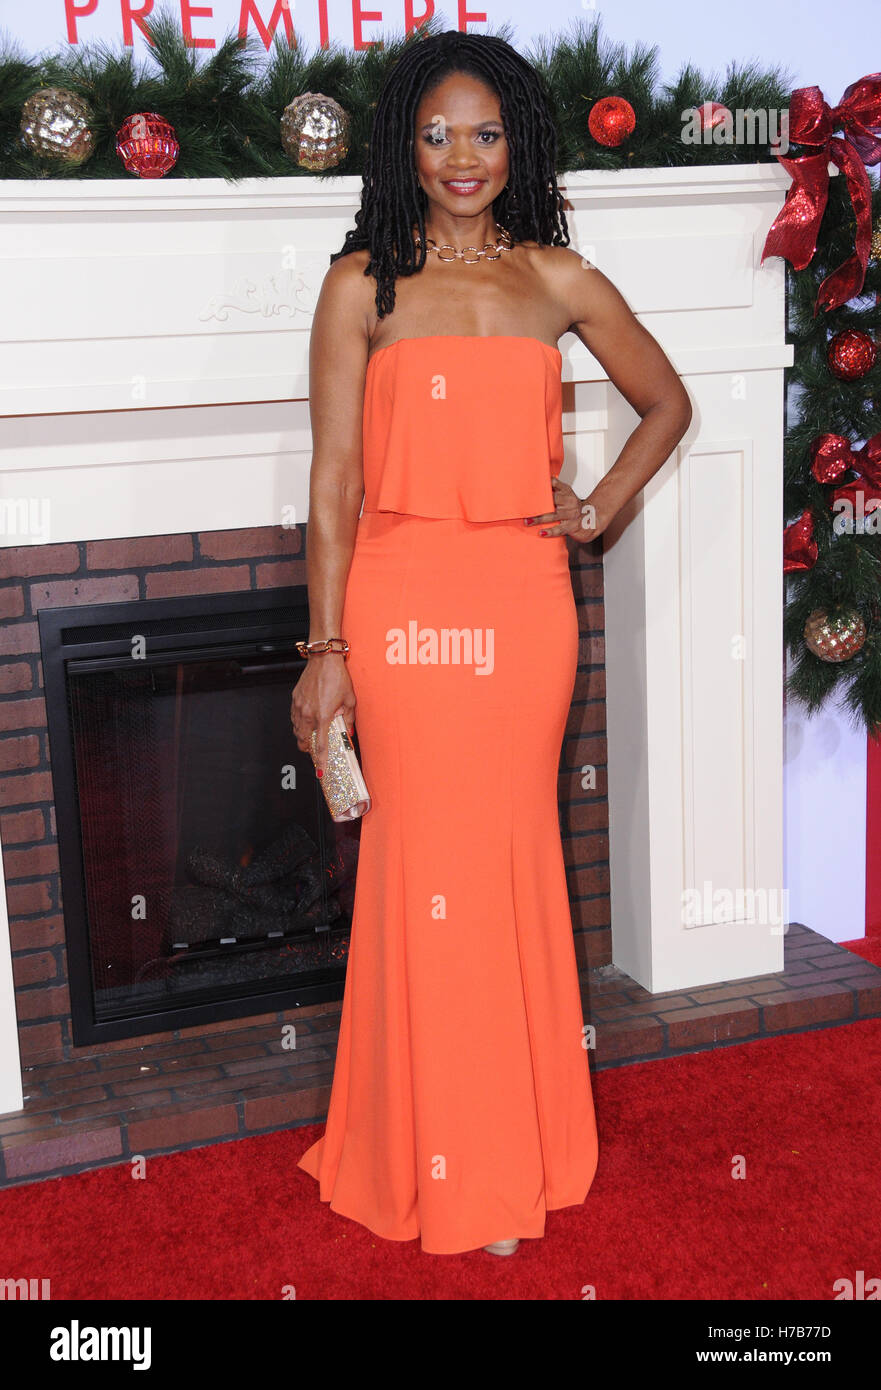 Westwood, CA, USA. 29Th sep 2016. 03 novembre 2016 - Westwood, Californie. Kimberly Elise. Première de l'Universelle Photo Stock